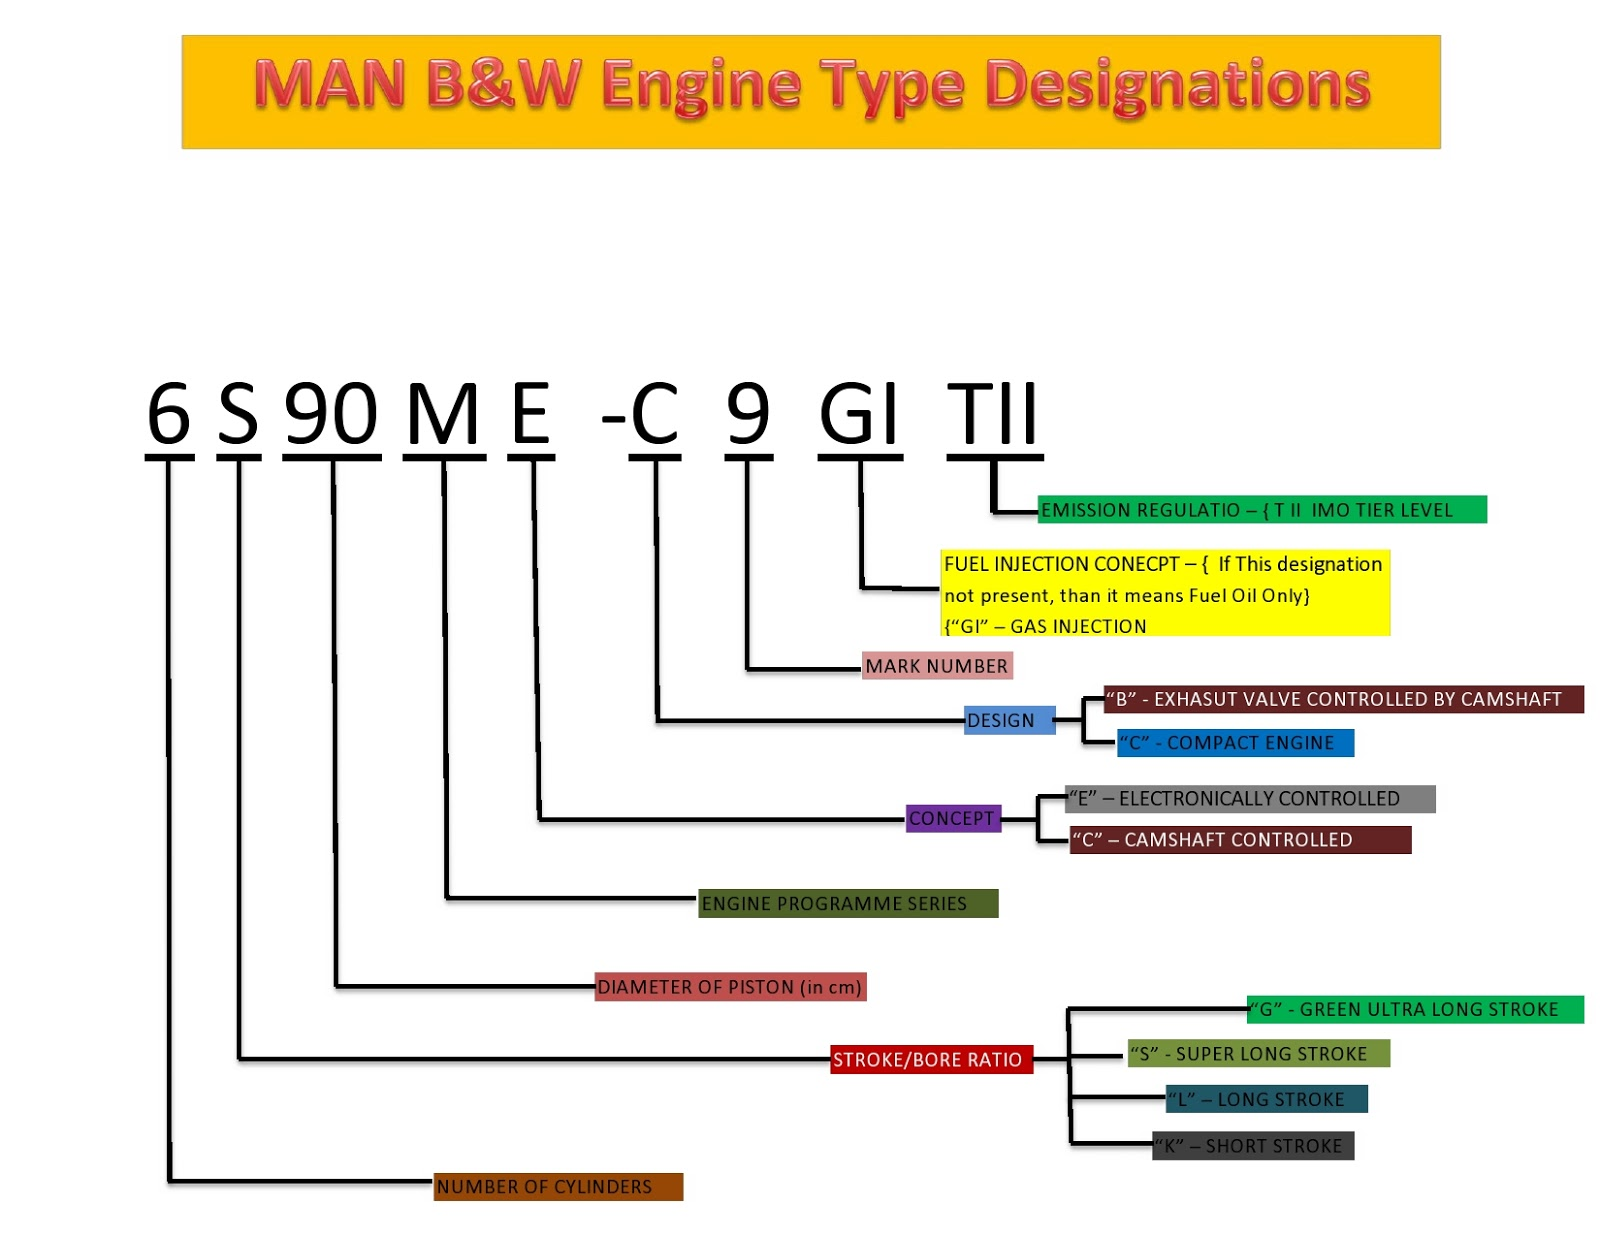 now that we have learnt about man b&w engines, lets now take a look at